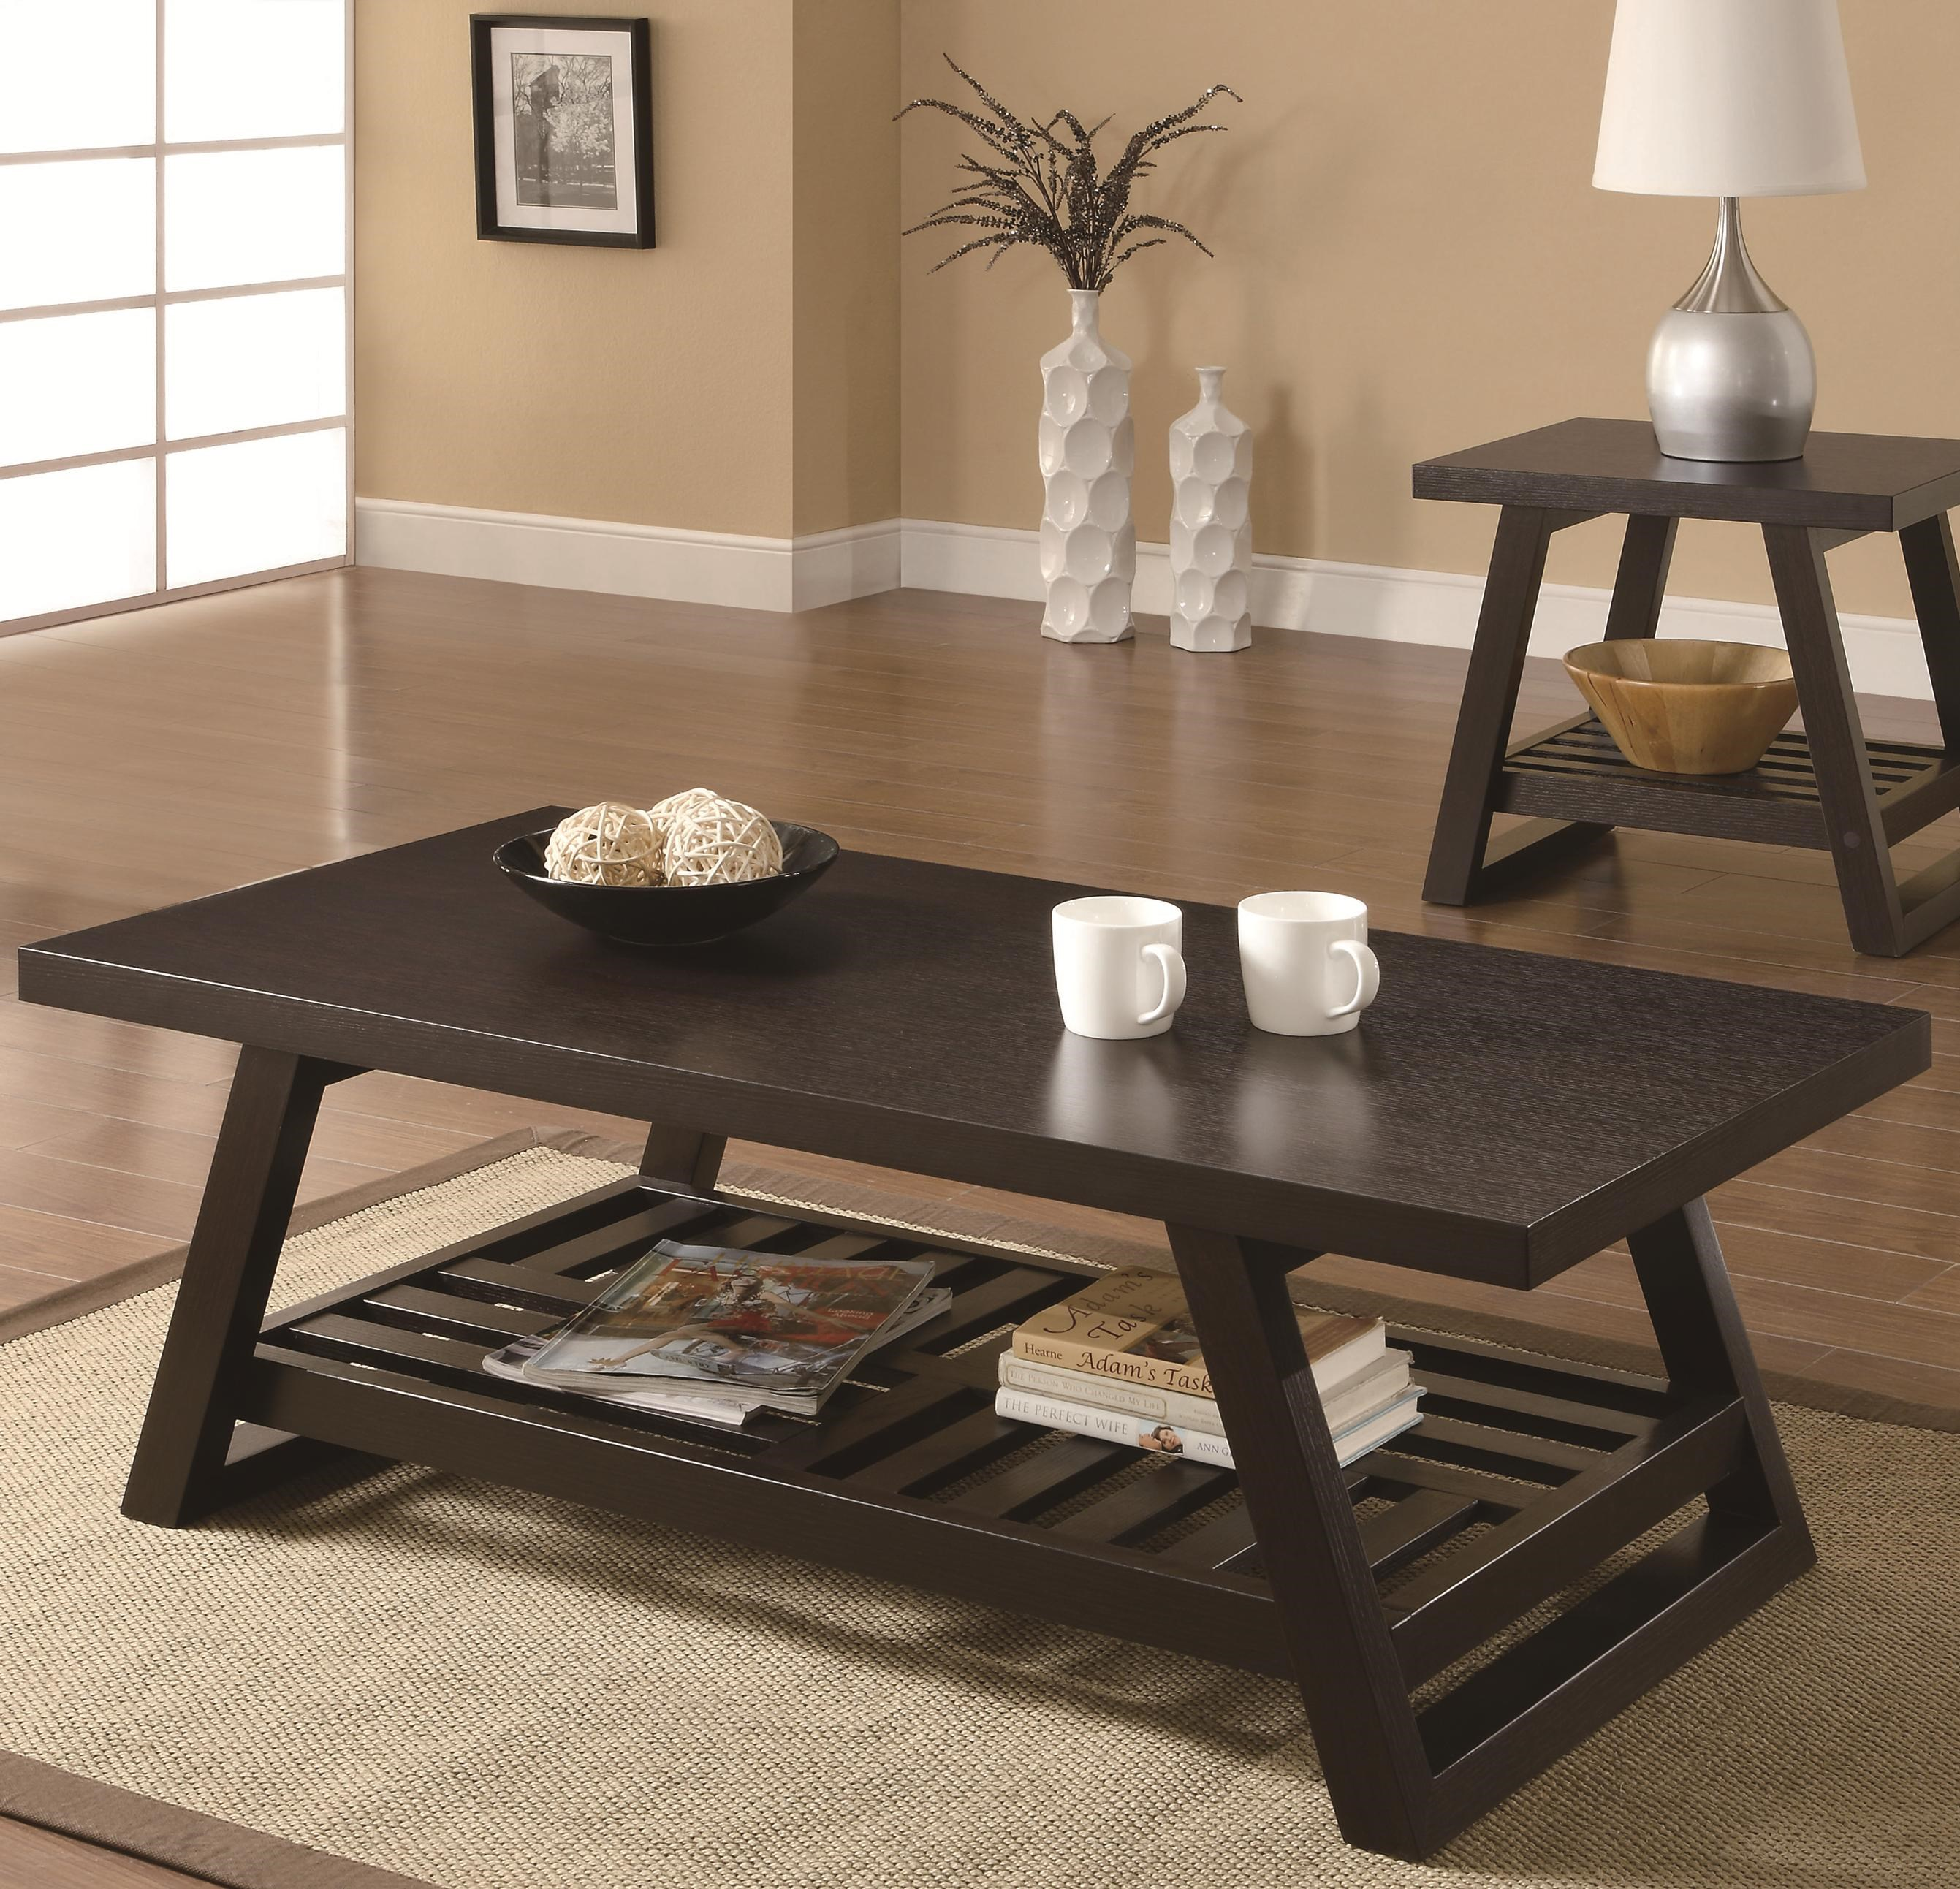 Coaster Occasional Group Casual Coffee Table With Slatted Bottom Shelf    Coaster Fine Furniture